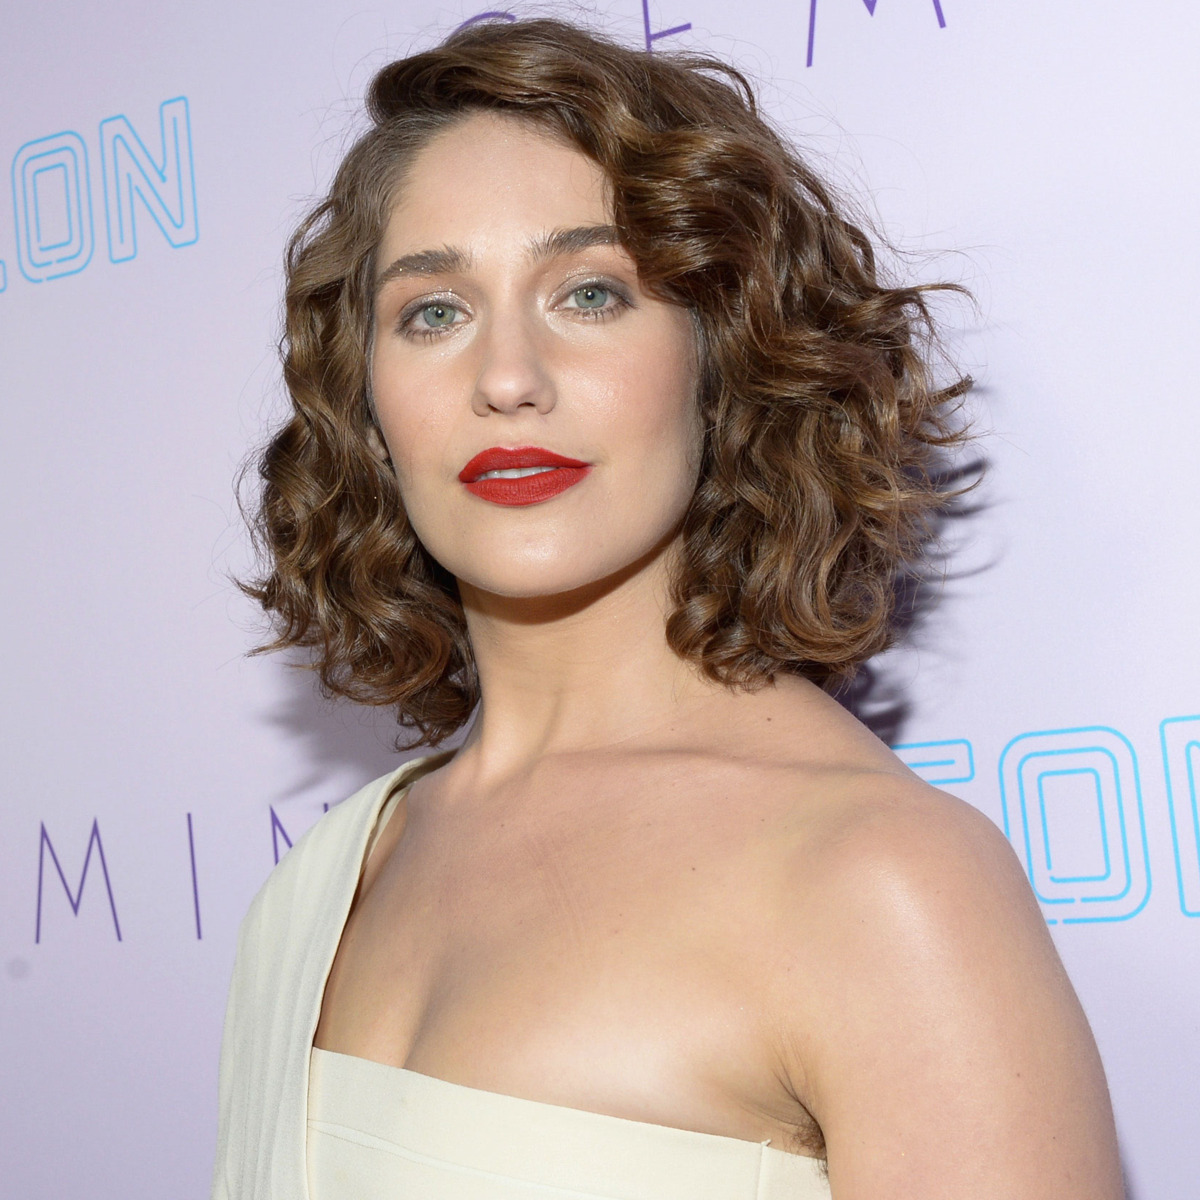 butt Selfie Lola Kirke naked photo 2017